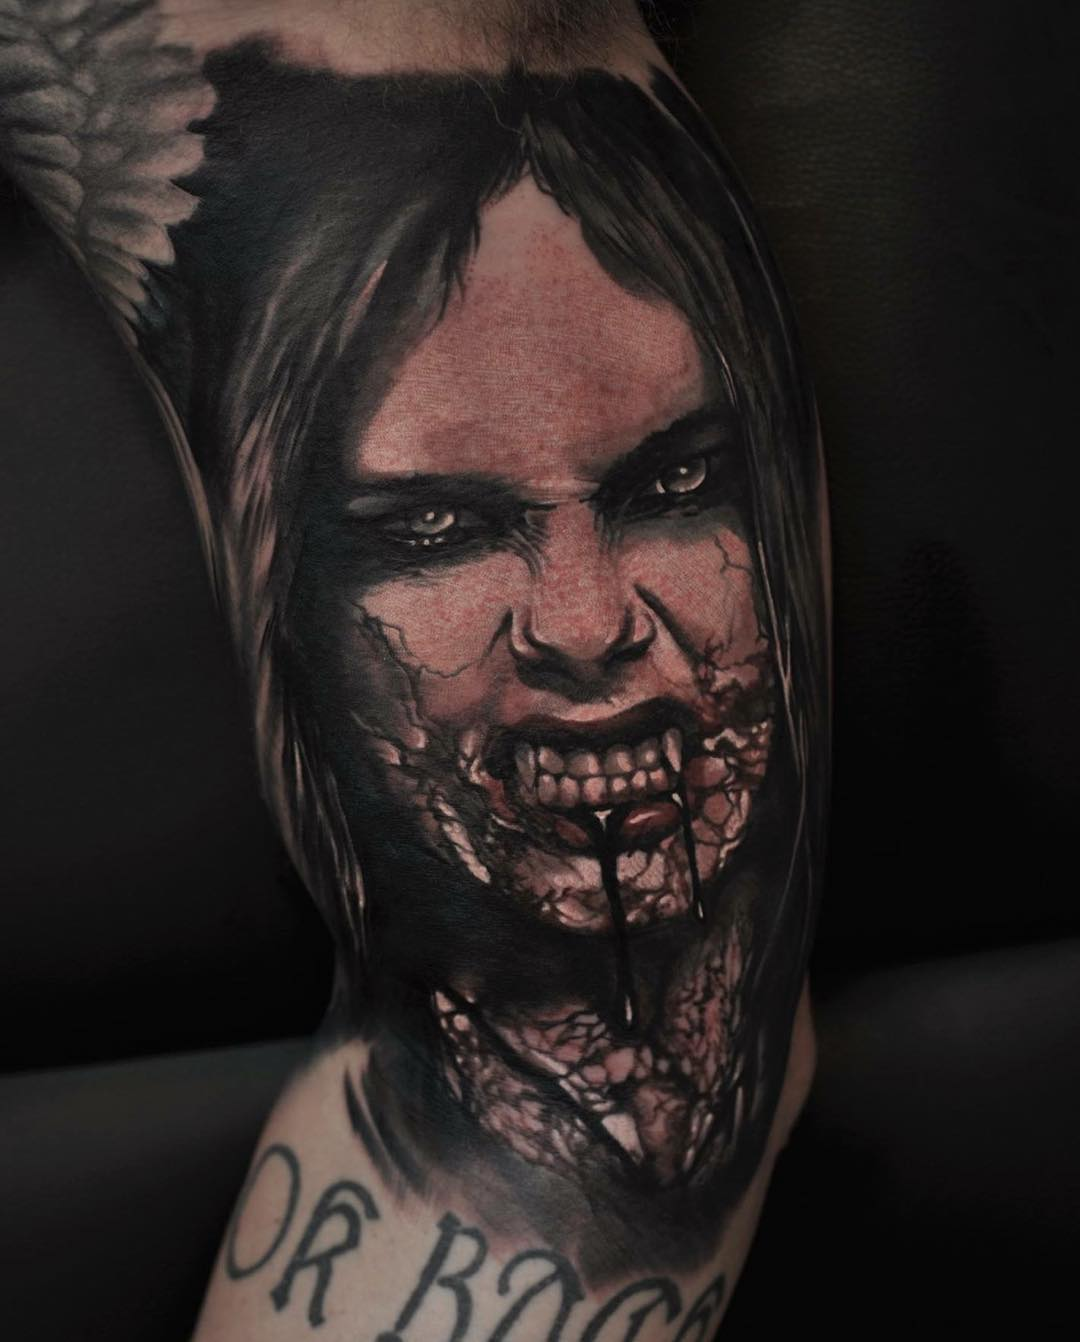 Zombie Little Girl Tattoo The gallery for -->...